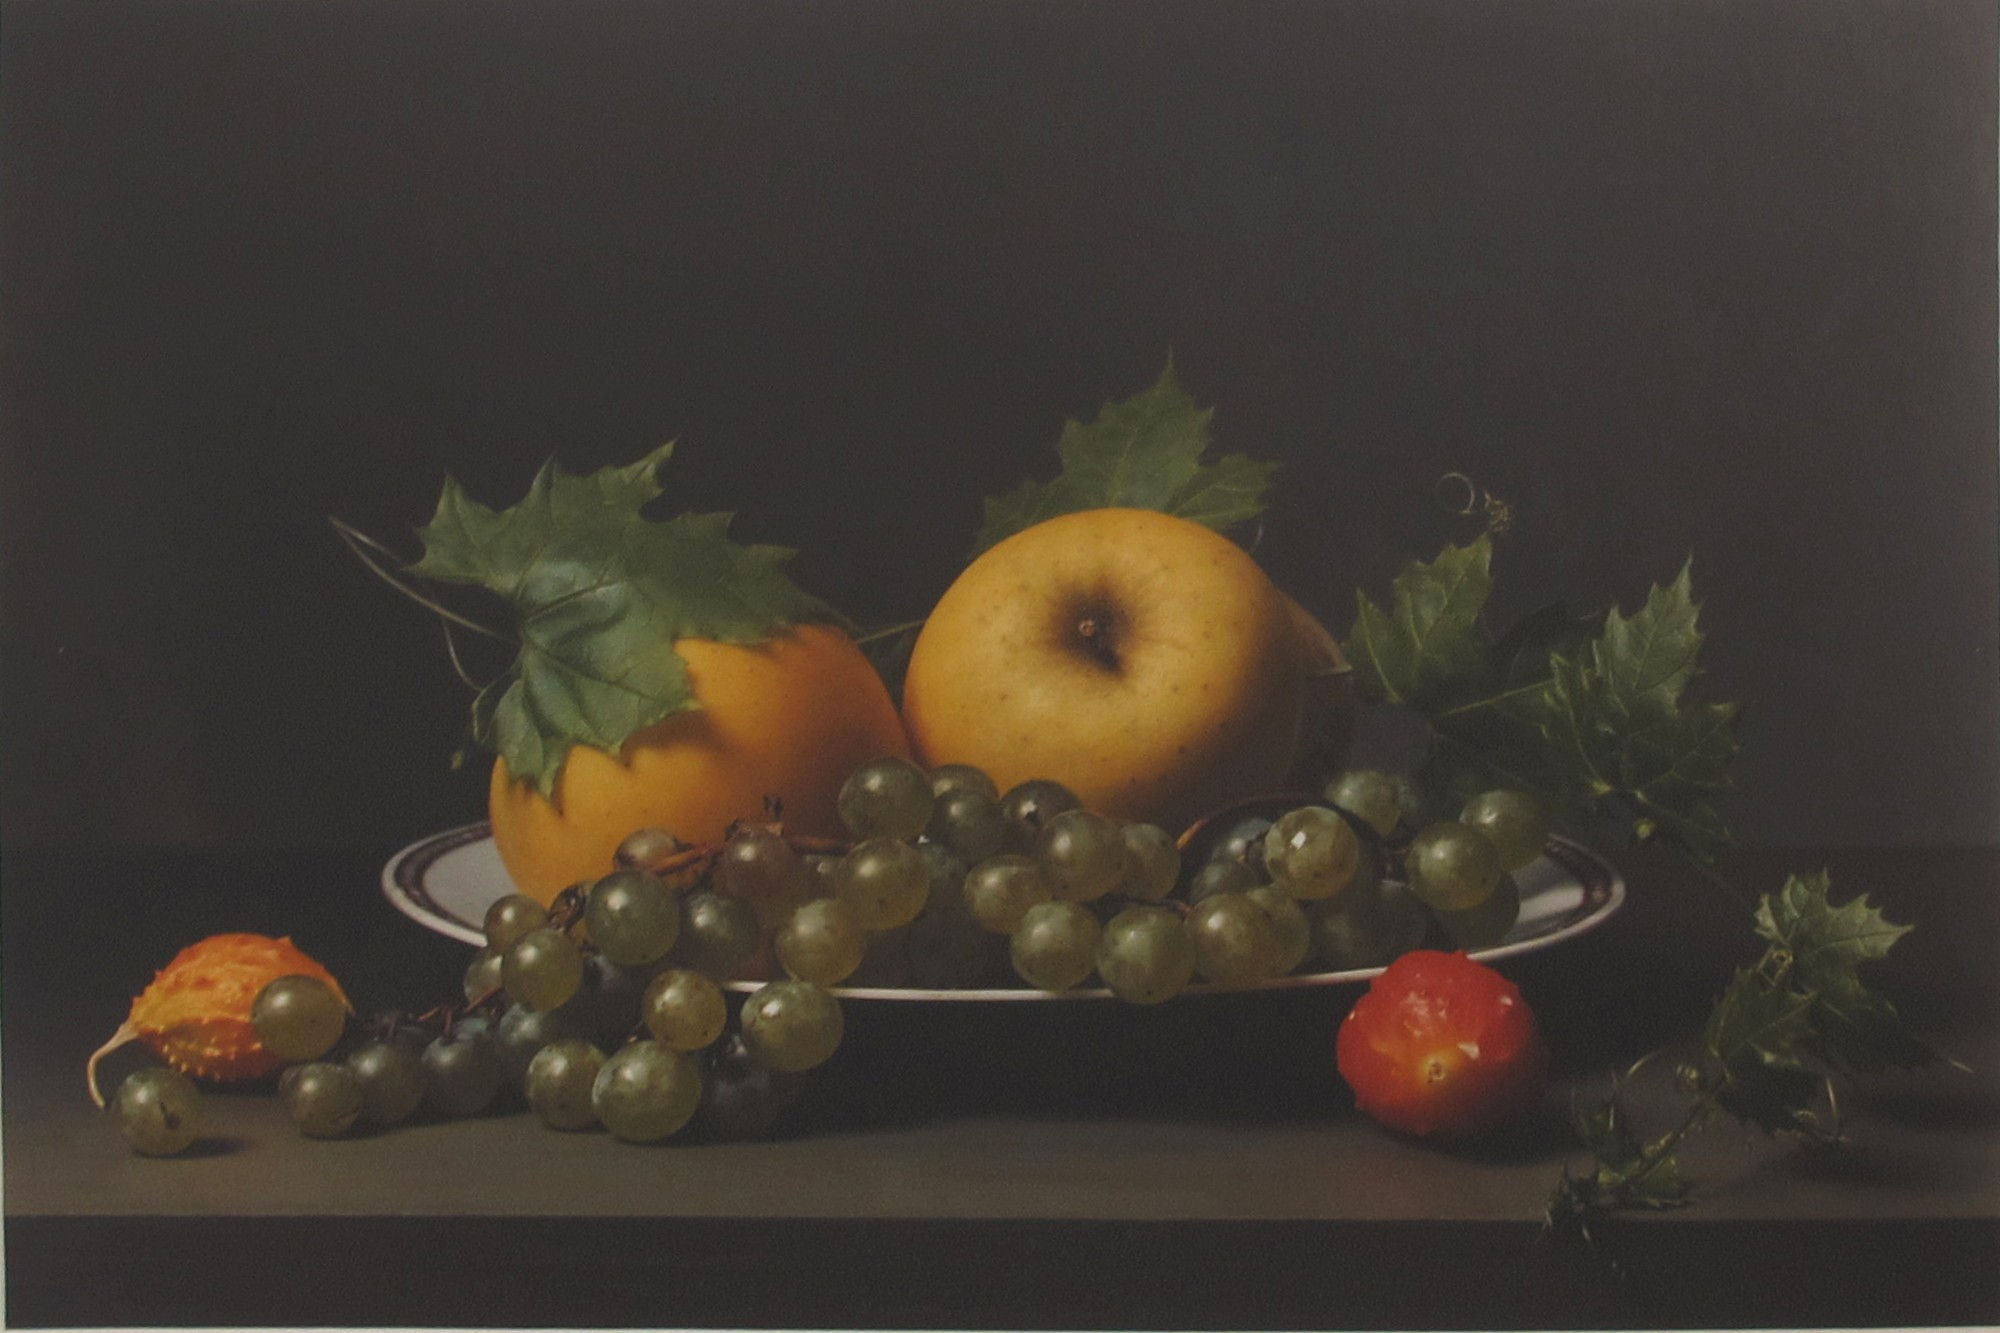 Sharon Core | Early American | Still Life with Balsam Apples | 2010 | Image of Artists' work.